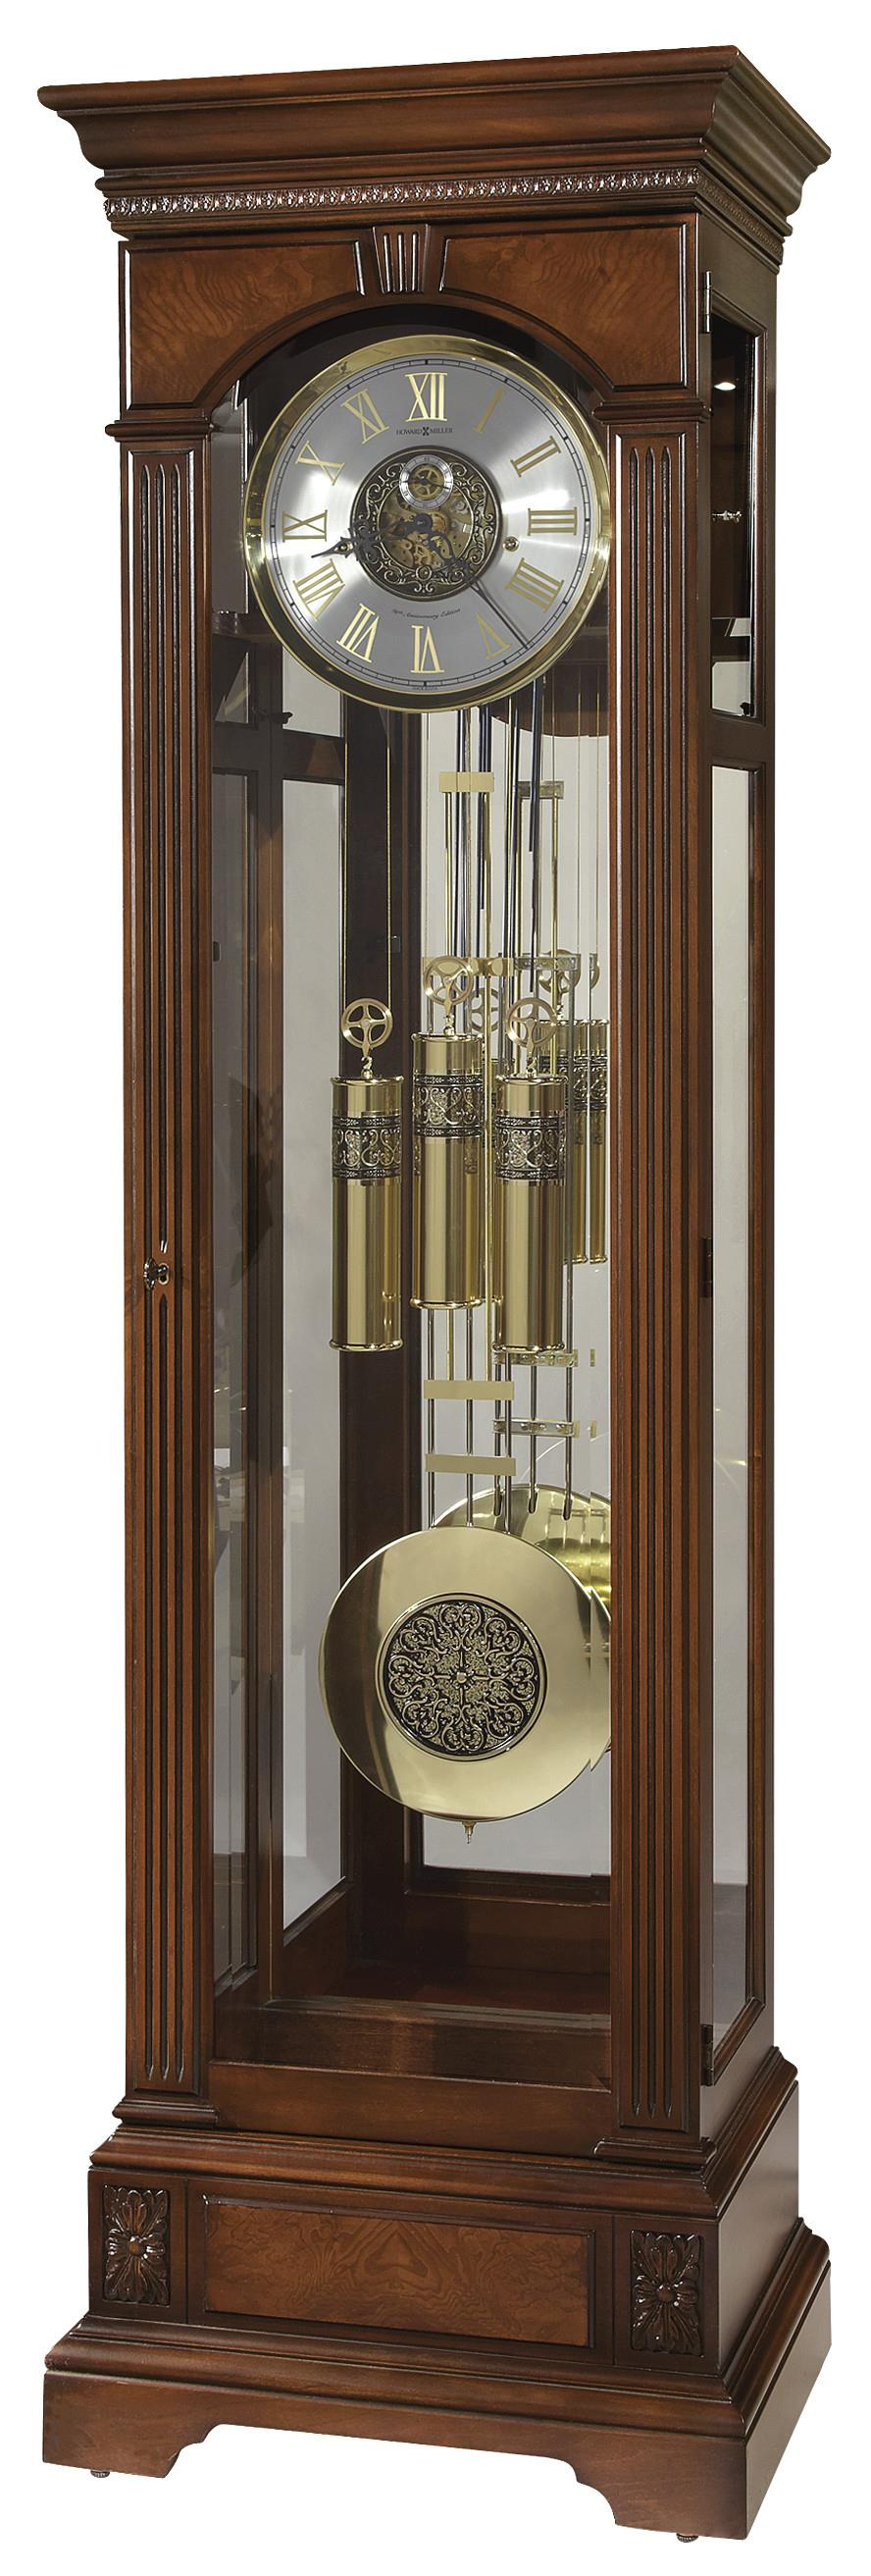 Howard Miller Clocks Alford Grandfather Clock - Item Number: 611-224